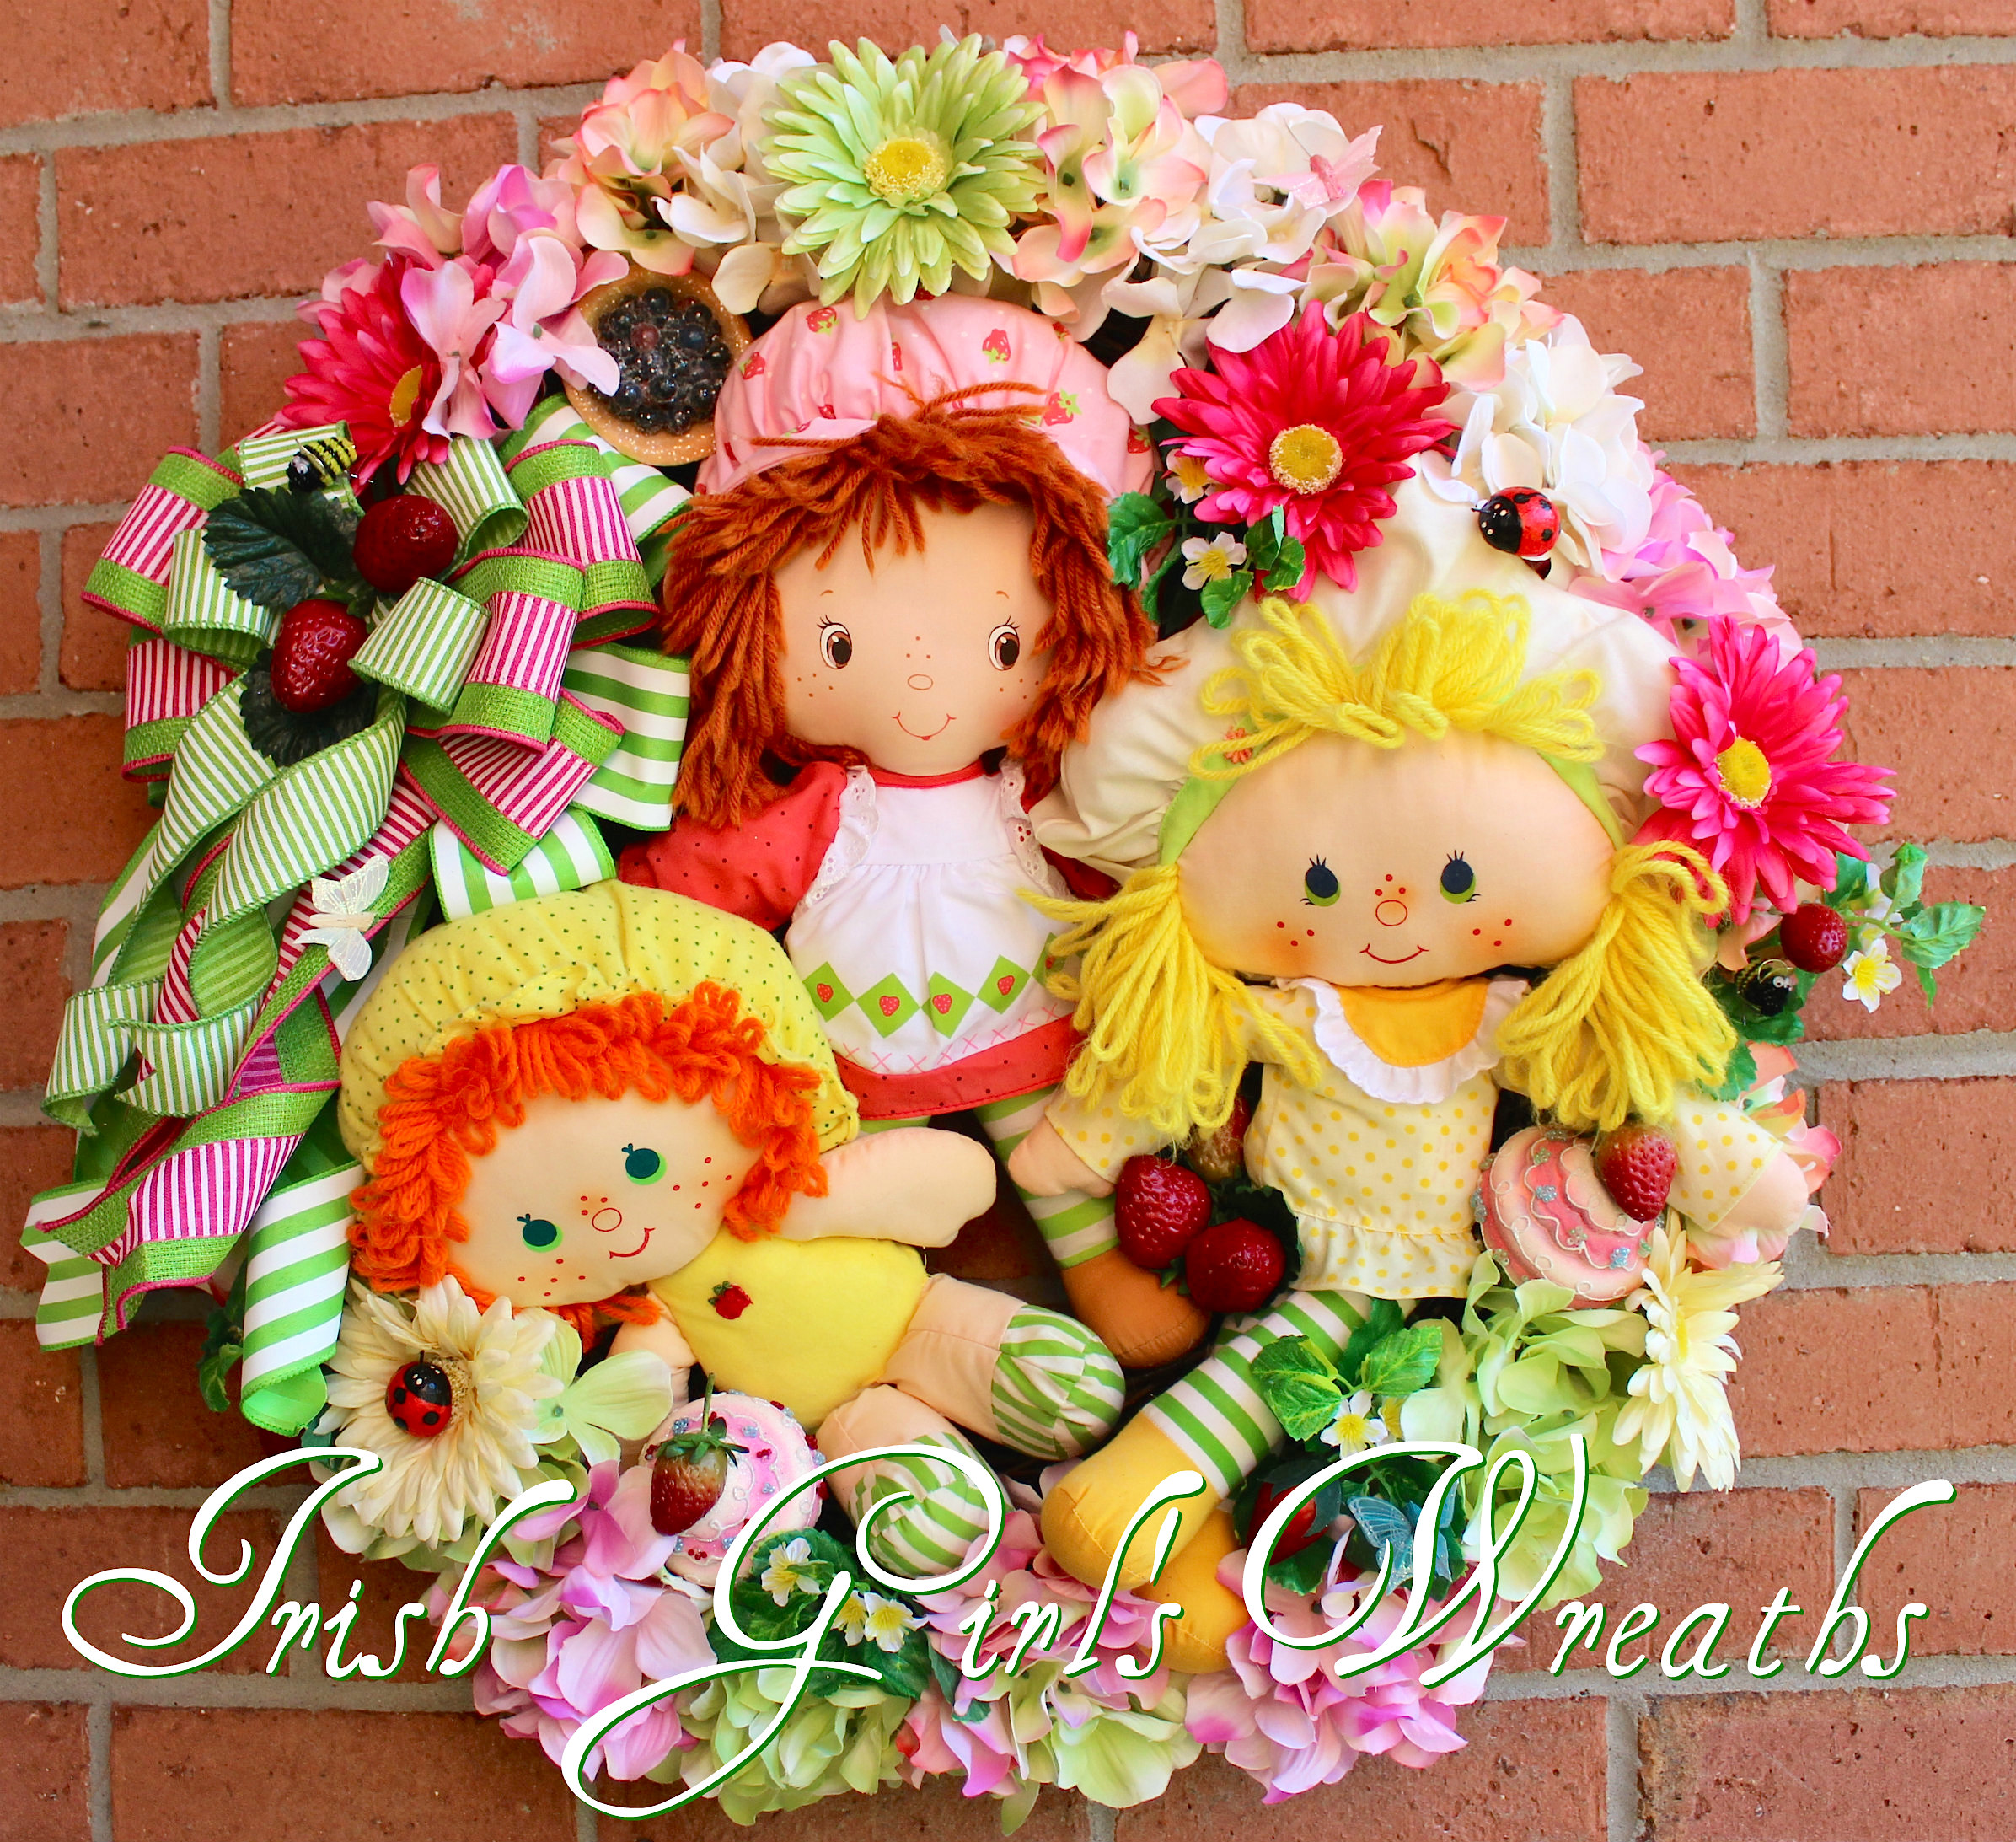 World Of Strawberry Shortcake Wreath, Custom for Dolores